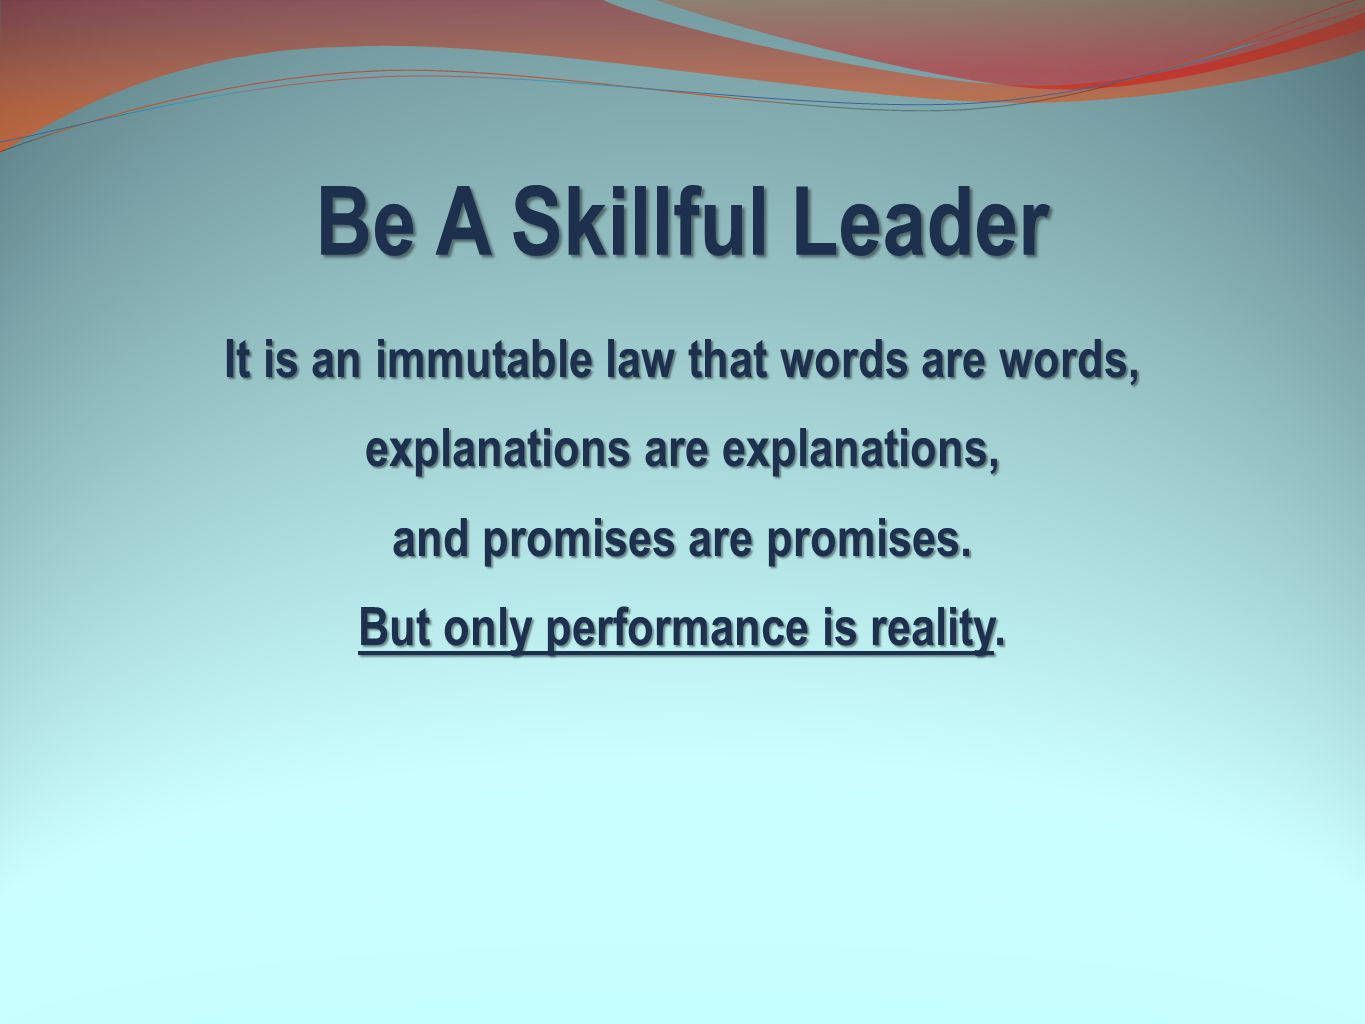 Be A Skillful Leader It is an immutable law that words are words, explanations are explanations, and promises are promises. But only performance is re